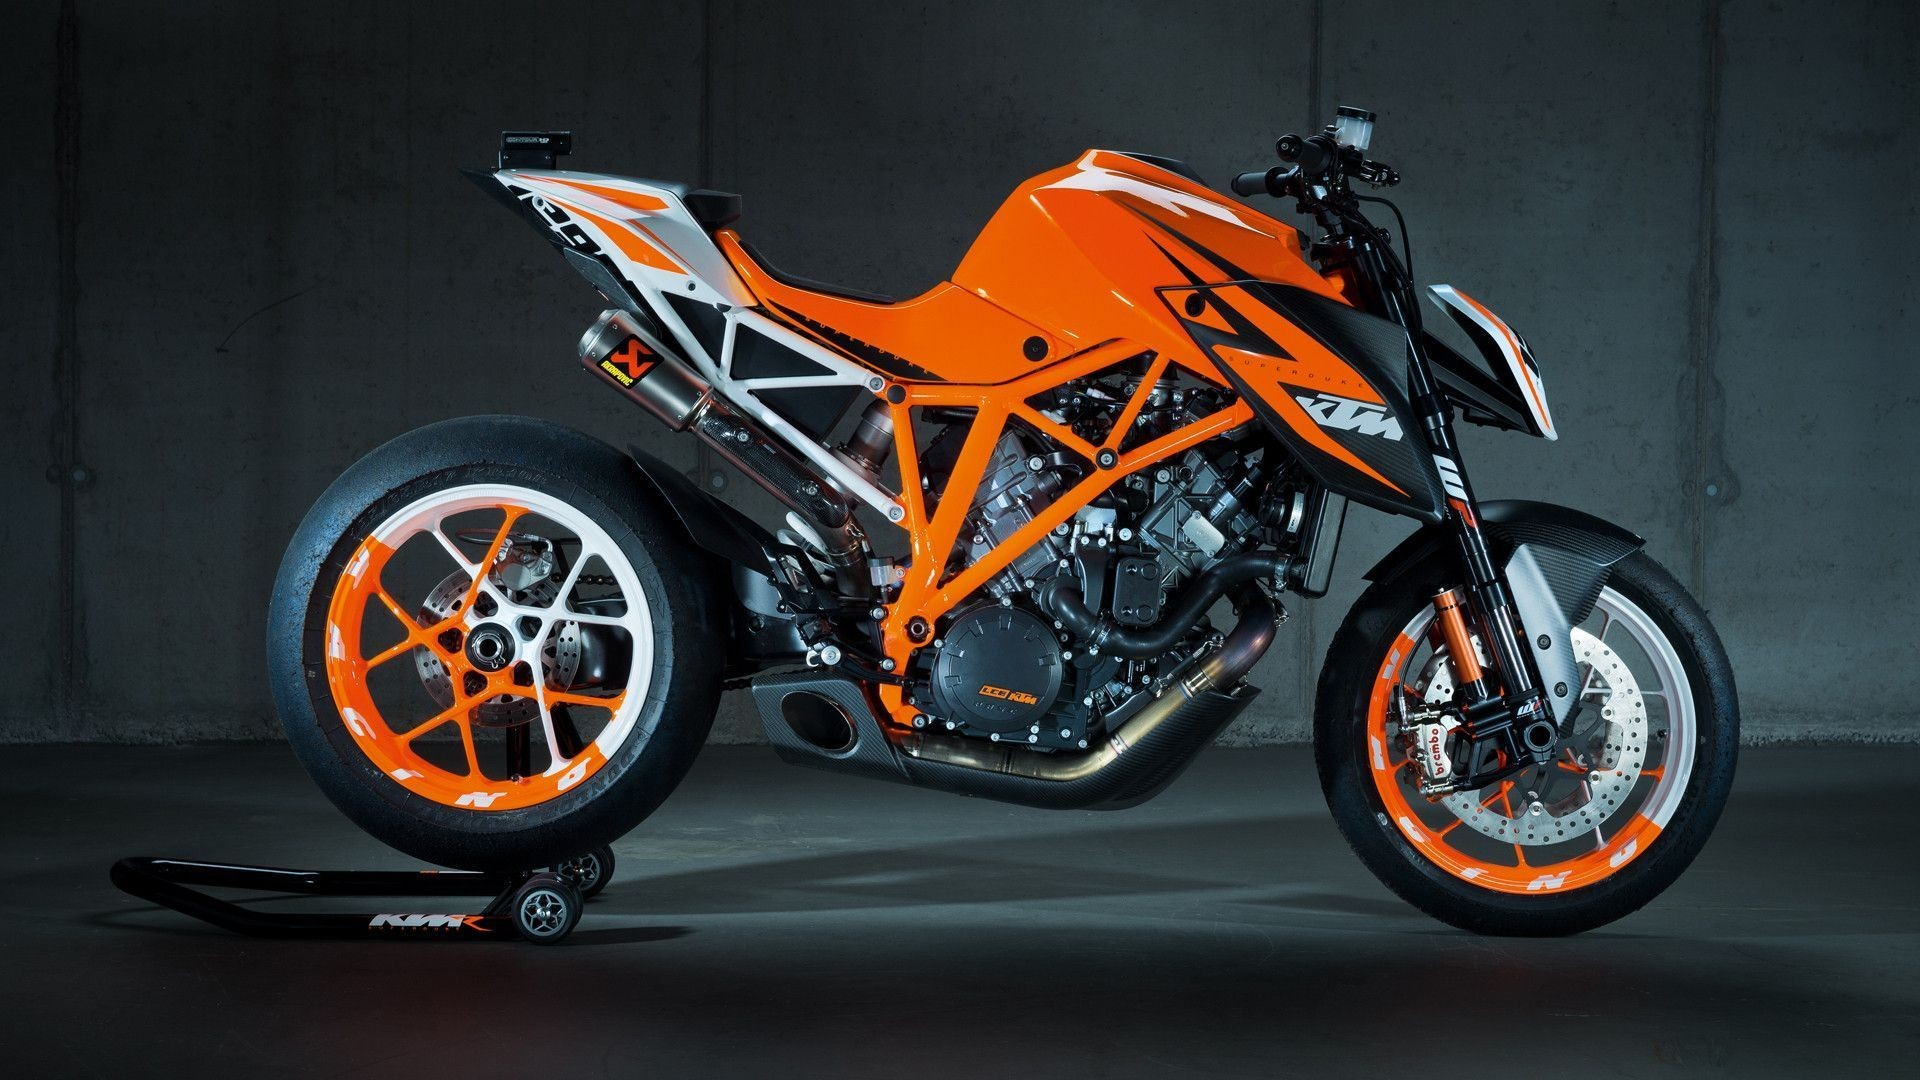 Res: 1920x1080, Motorbike Wallpaper: Ktm Duke Wallpapers High Quality with HD 1600×900 Duke  Wallpapers (